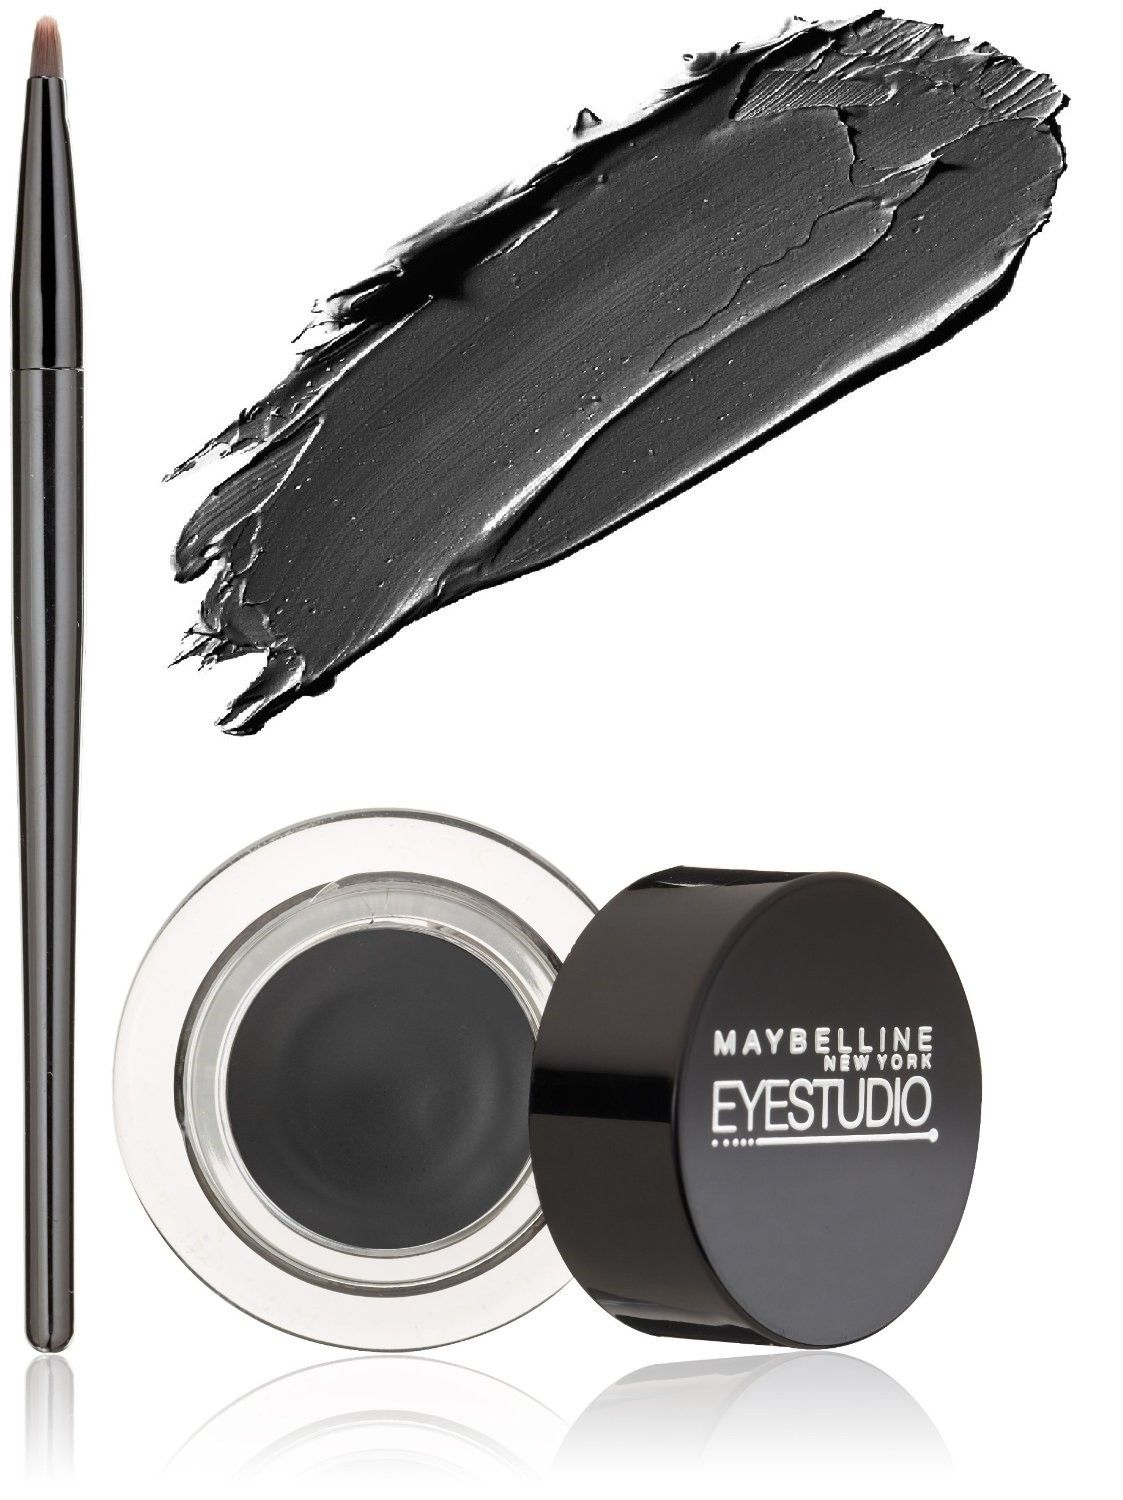 83 Maybelline Ideas Maybelline No Foundation Makeup Fragrance Free Products